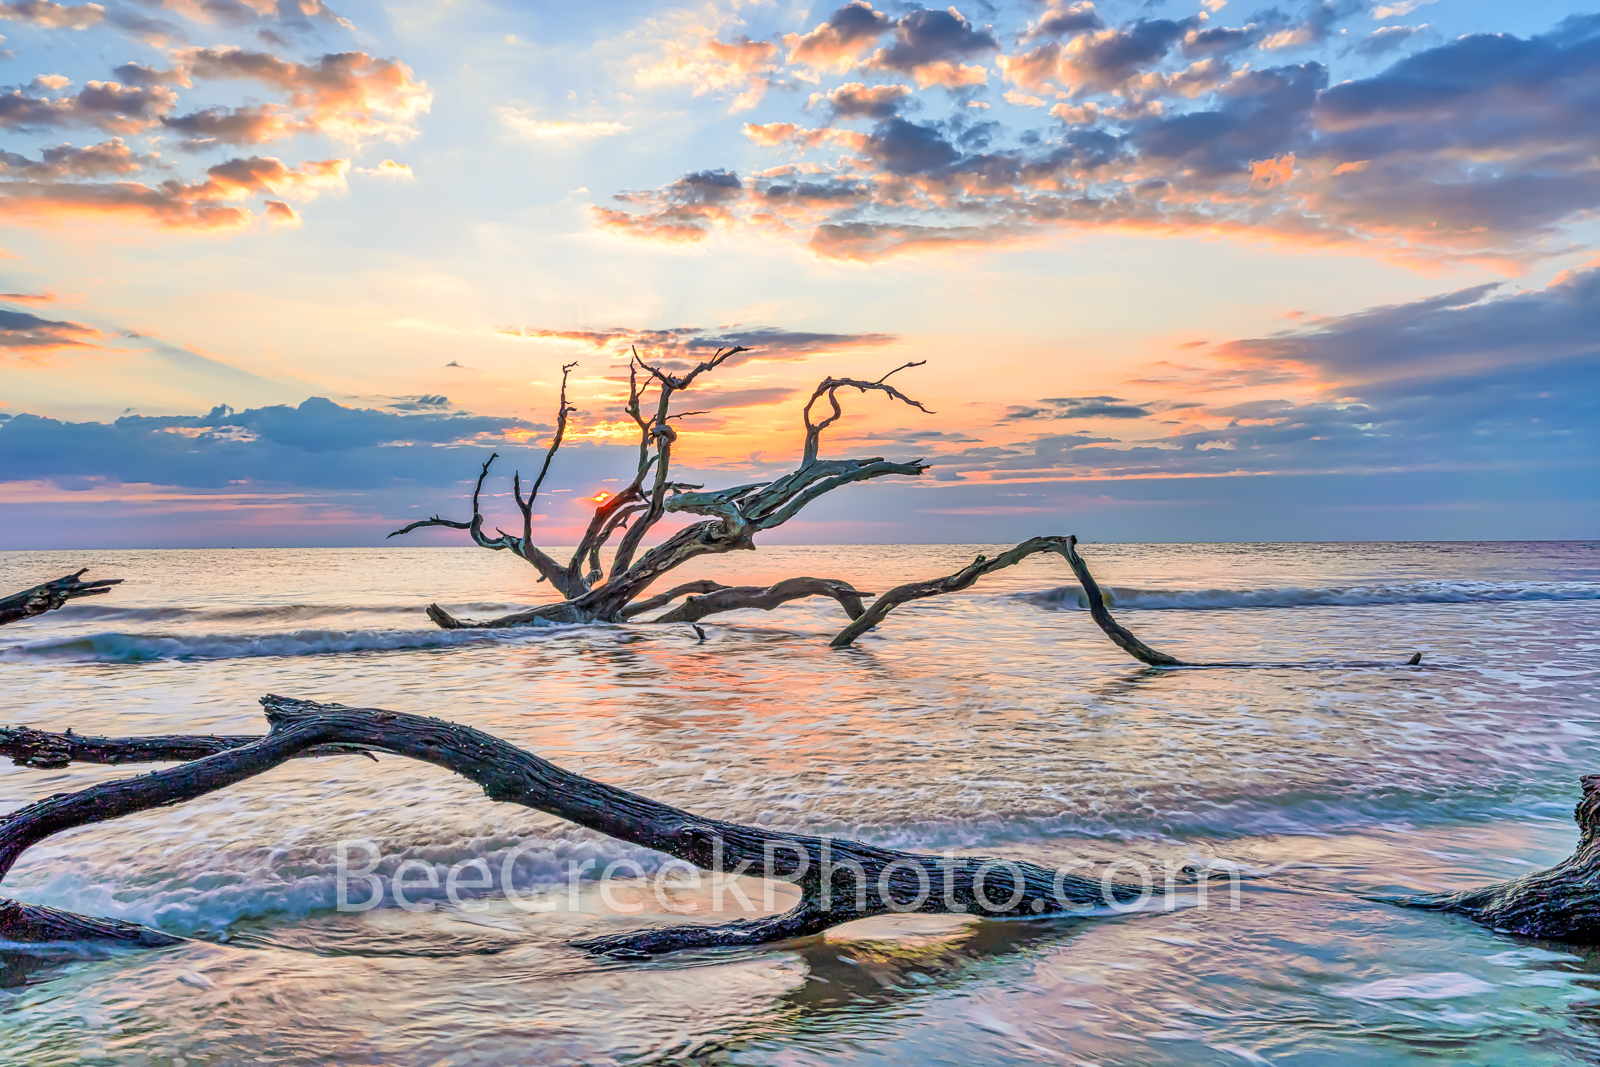 Driftwood in the Surf - Jekyll island sunrise at driftwood beach as the tide comes in surround this dead tree and the other pieces...